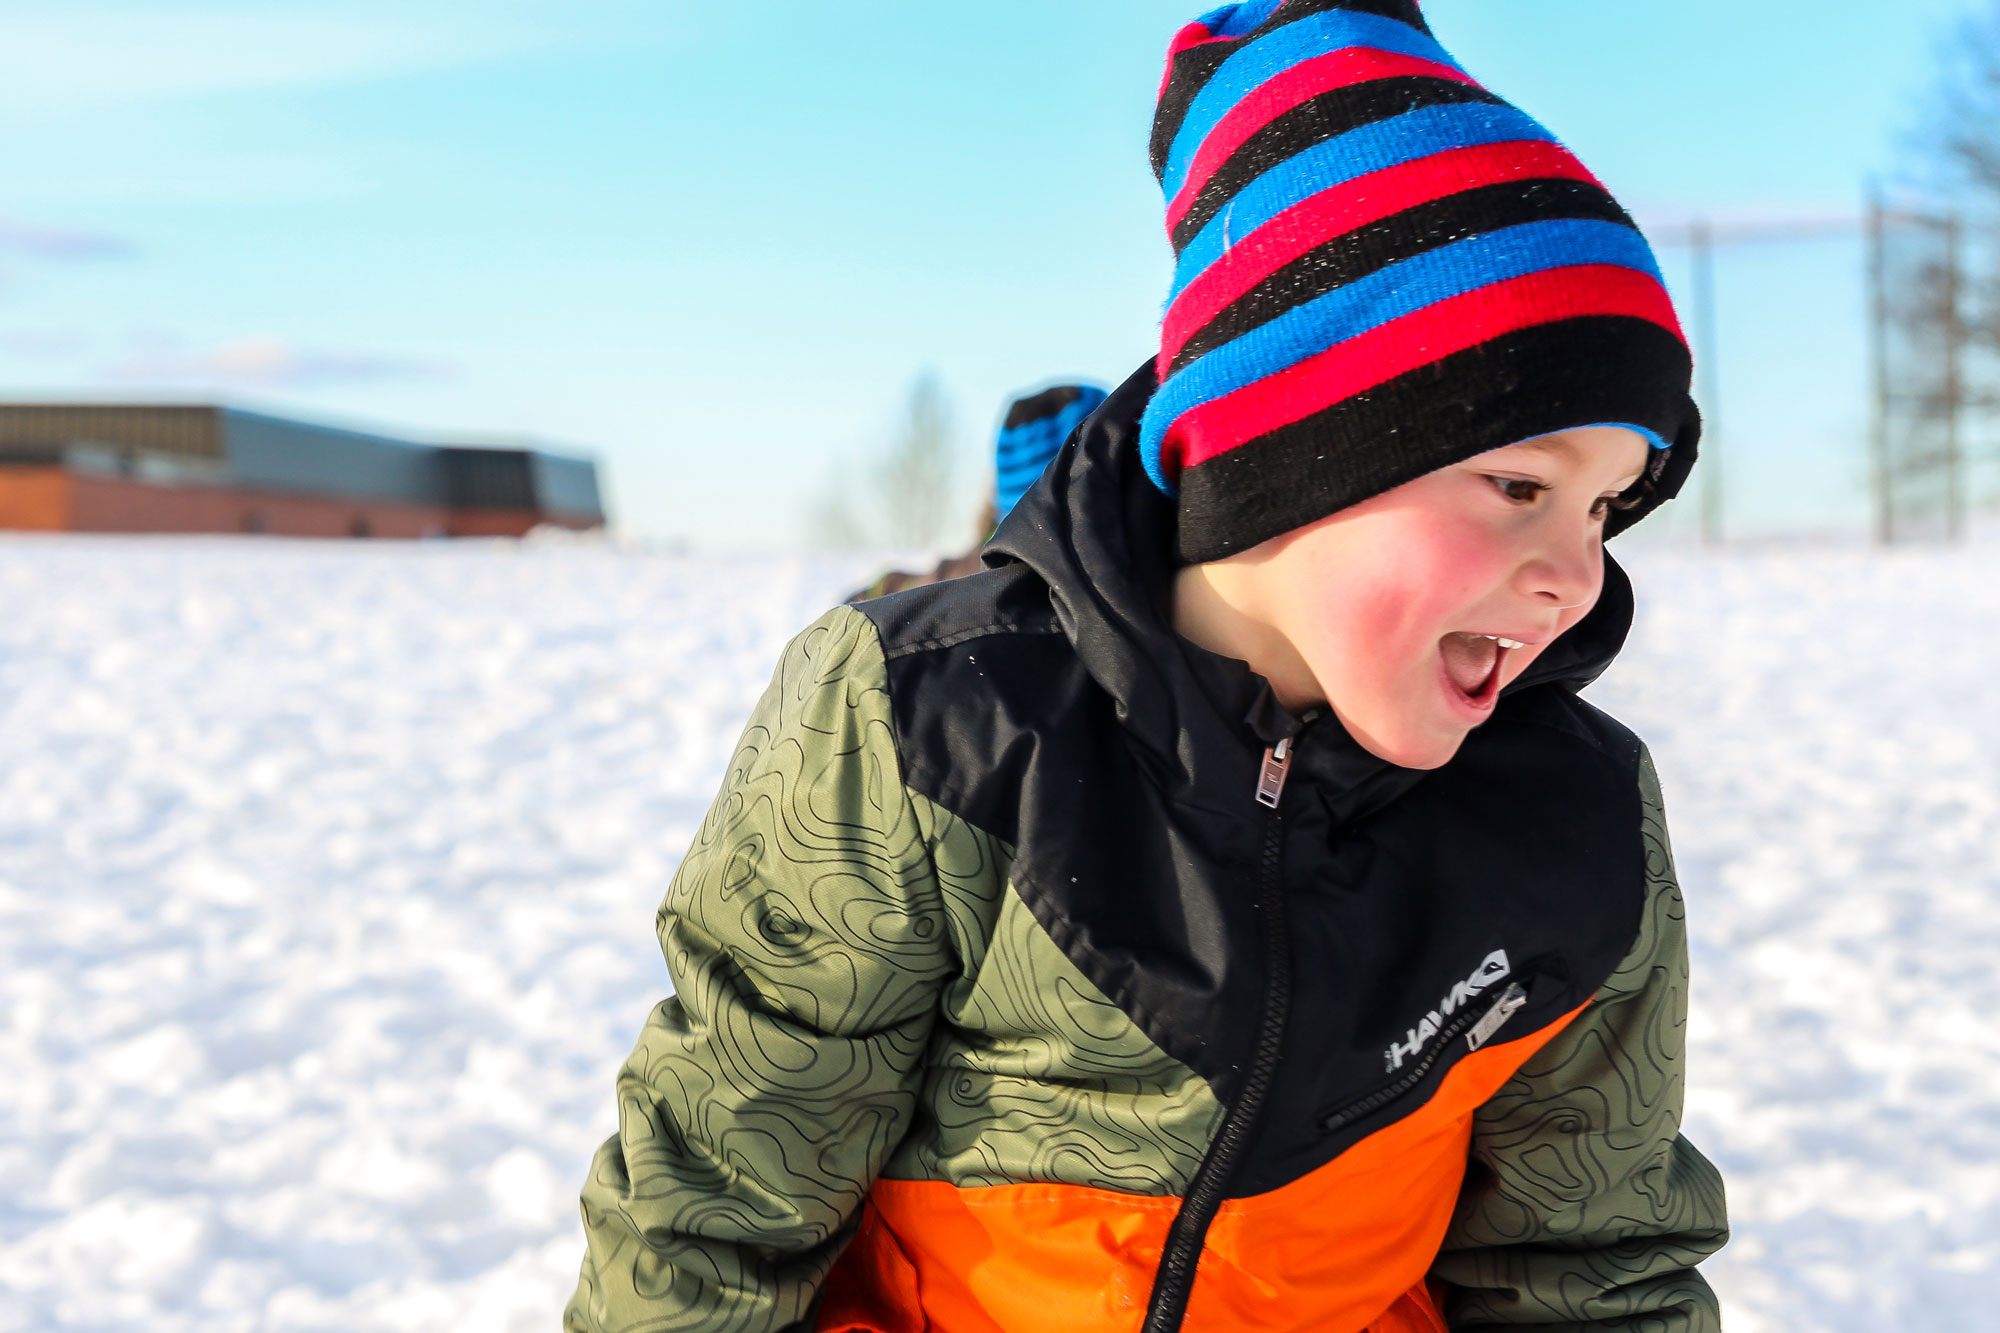 Boy outside in winter, wearing striped hat